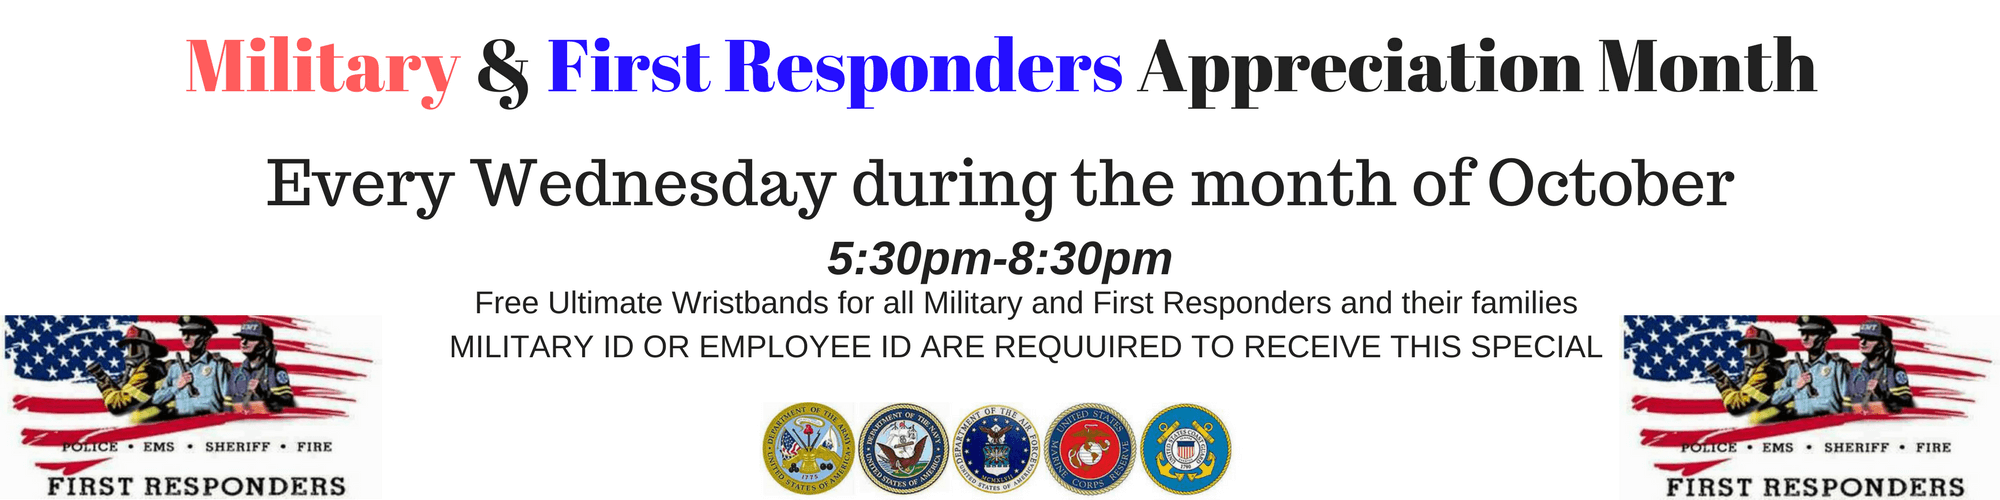 First Responders & Military Appreciation Month (3)